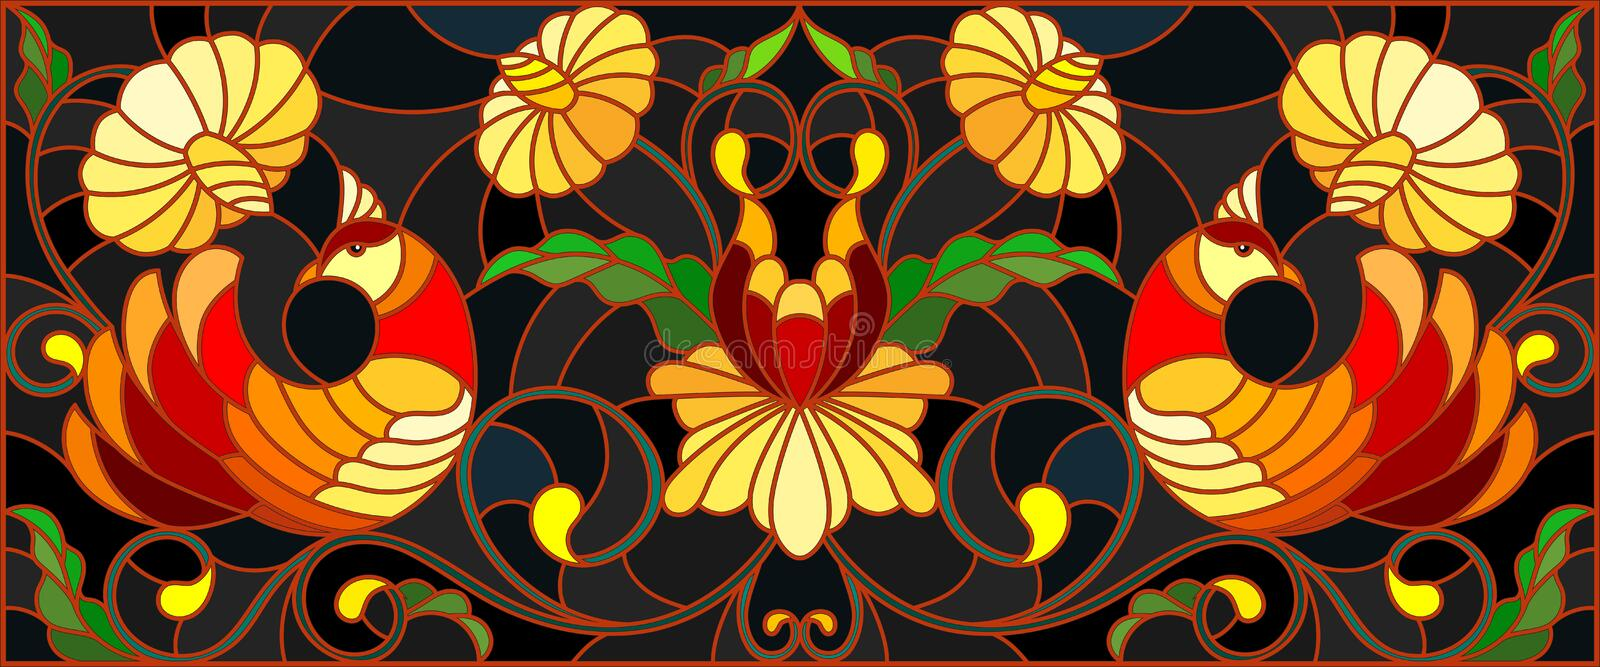 Stained glass illustration with a pair of birds , flowers and patterns on a dark background , horizontal image,the imitation of p vector illustration